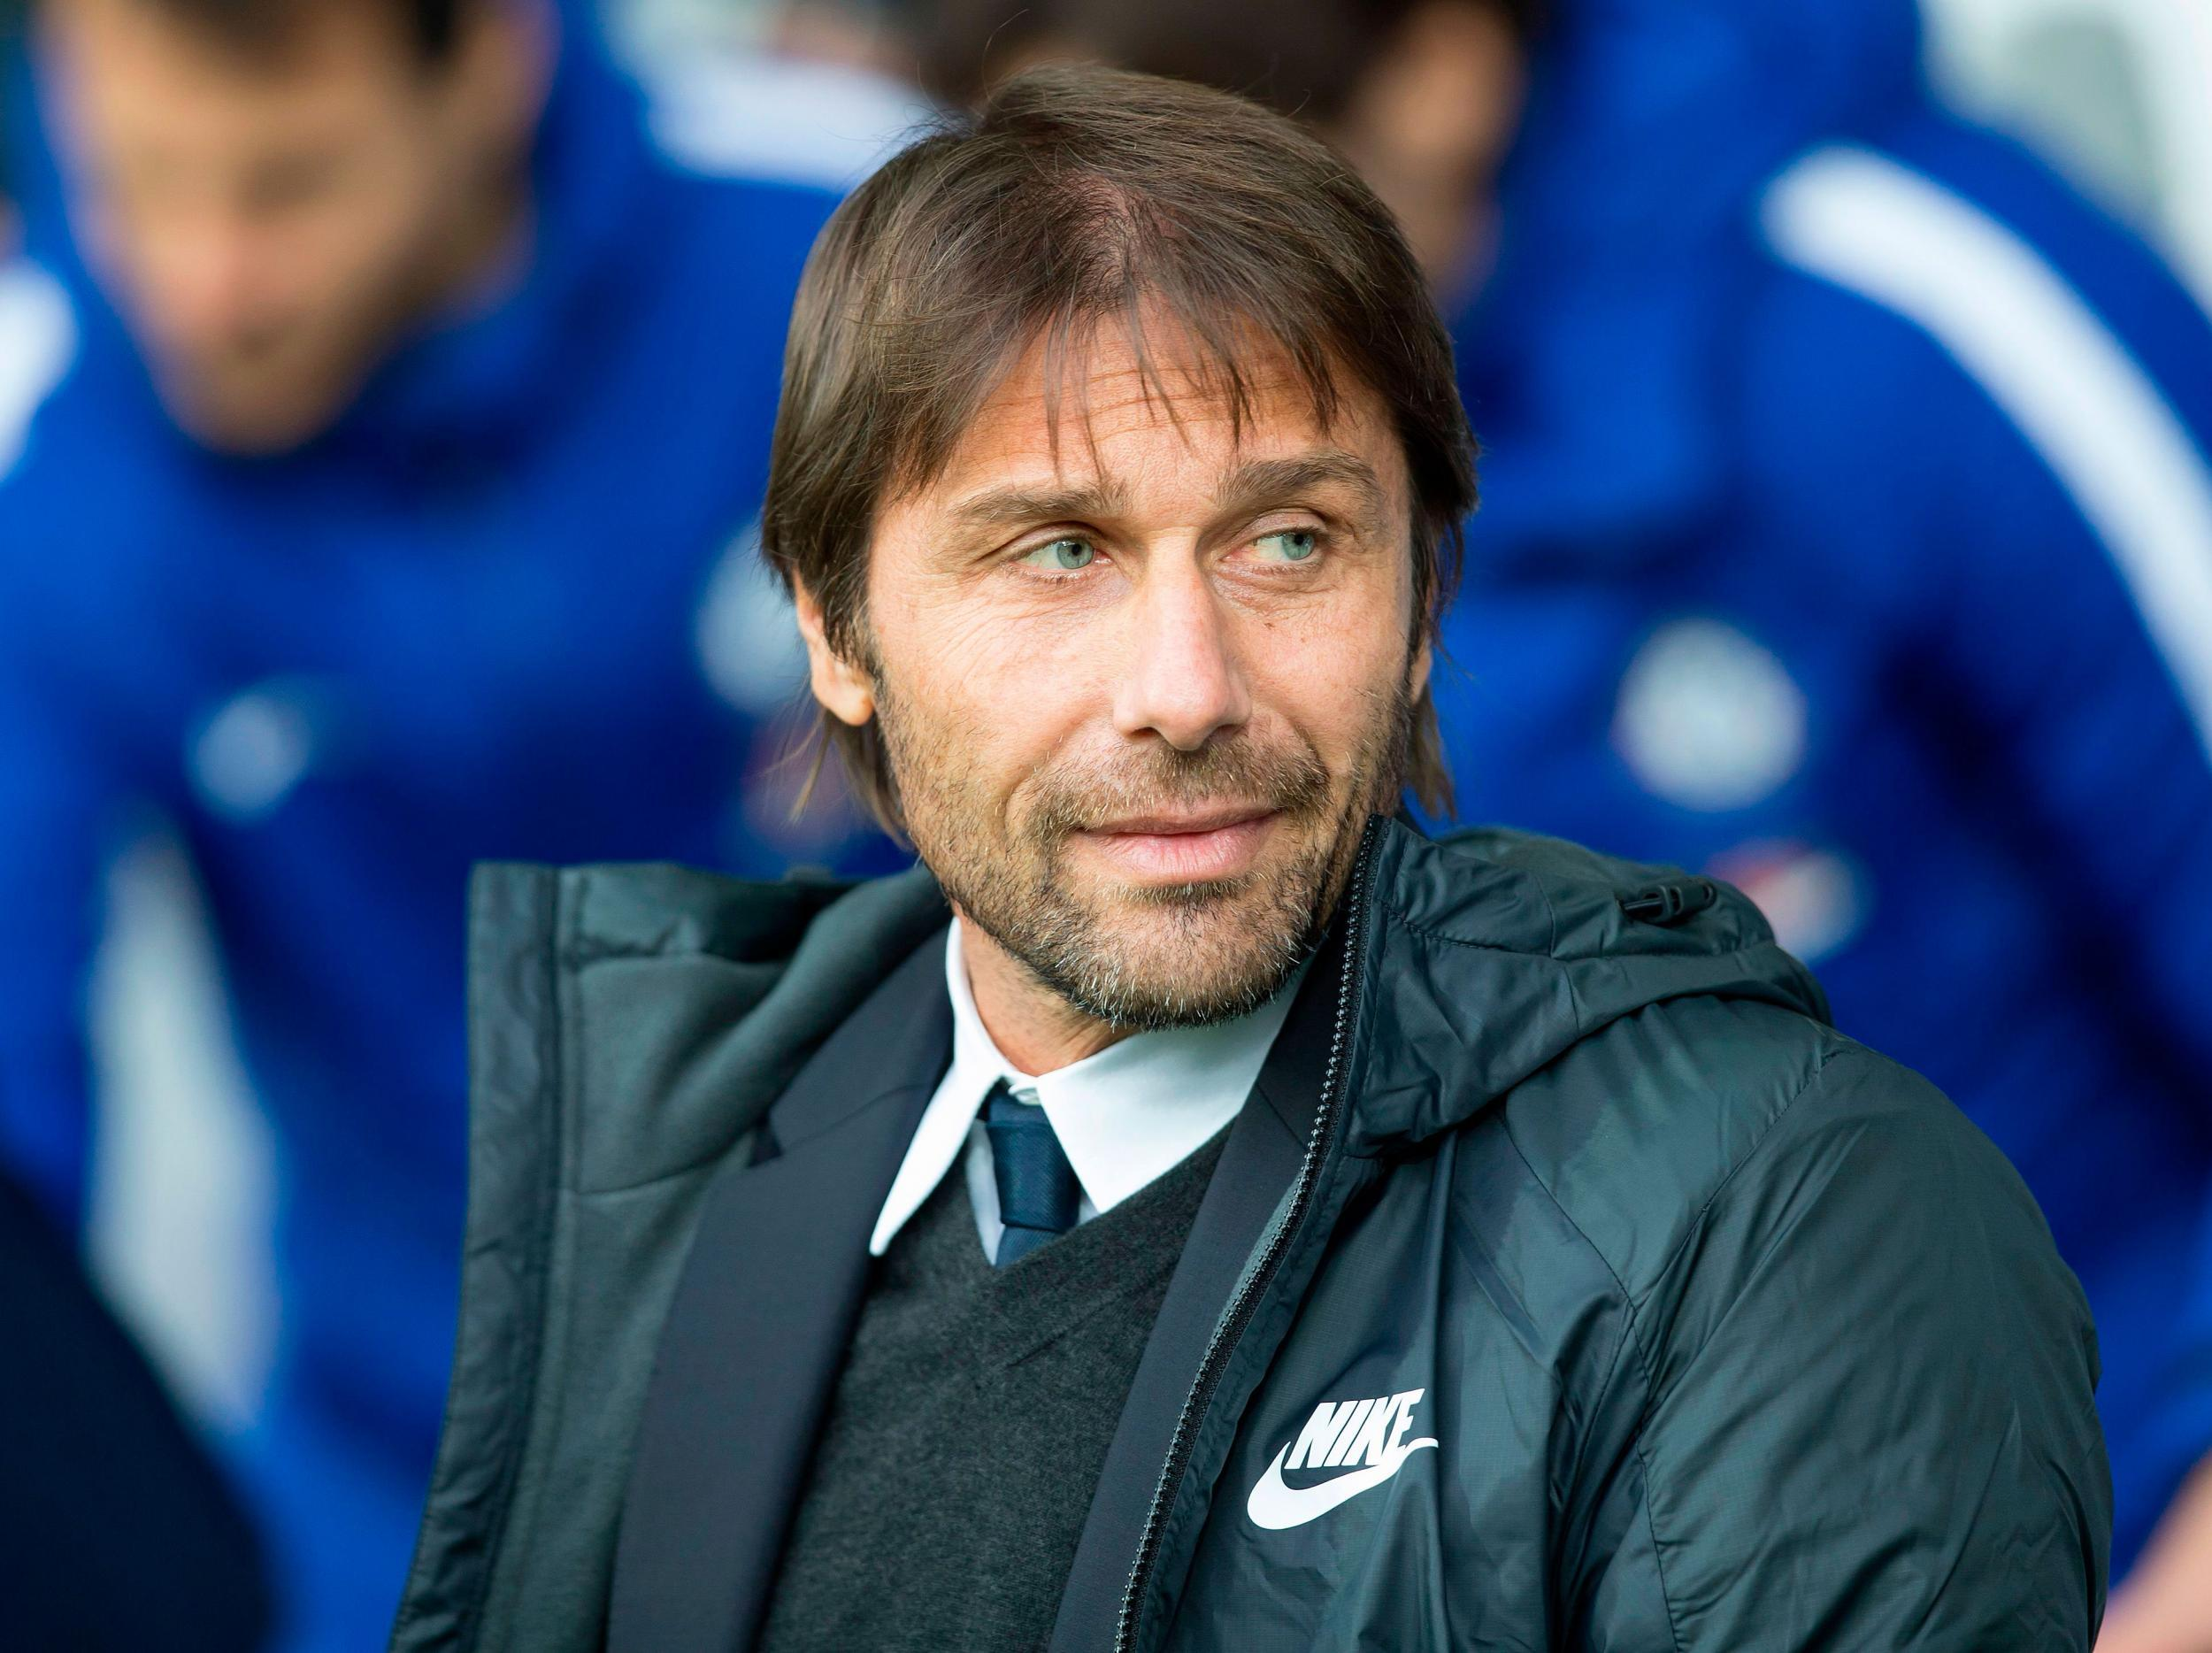 Chelsea's Antonio Conte emerges as top target for Italy manager's job